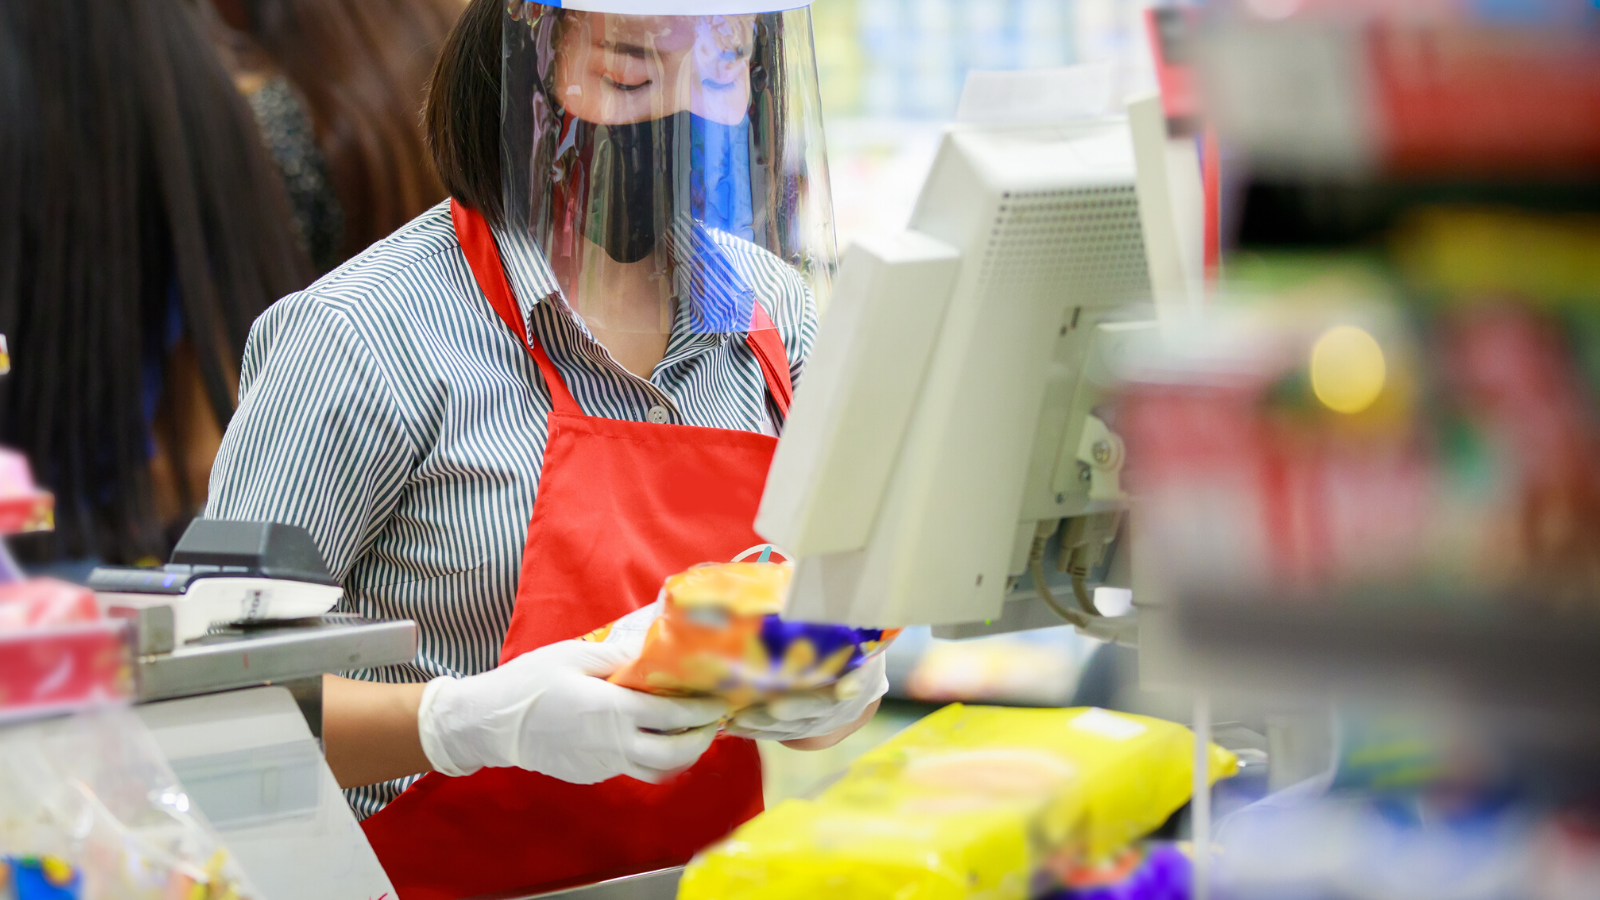 Cashier worker wearing a Silenta face shield visor.